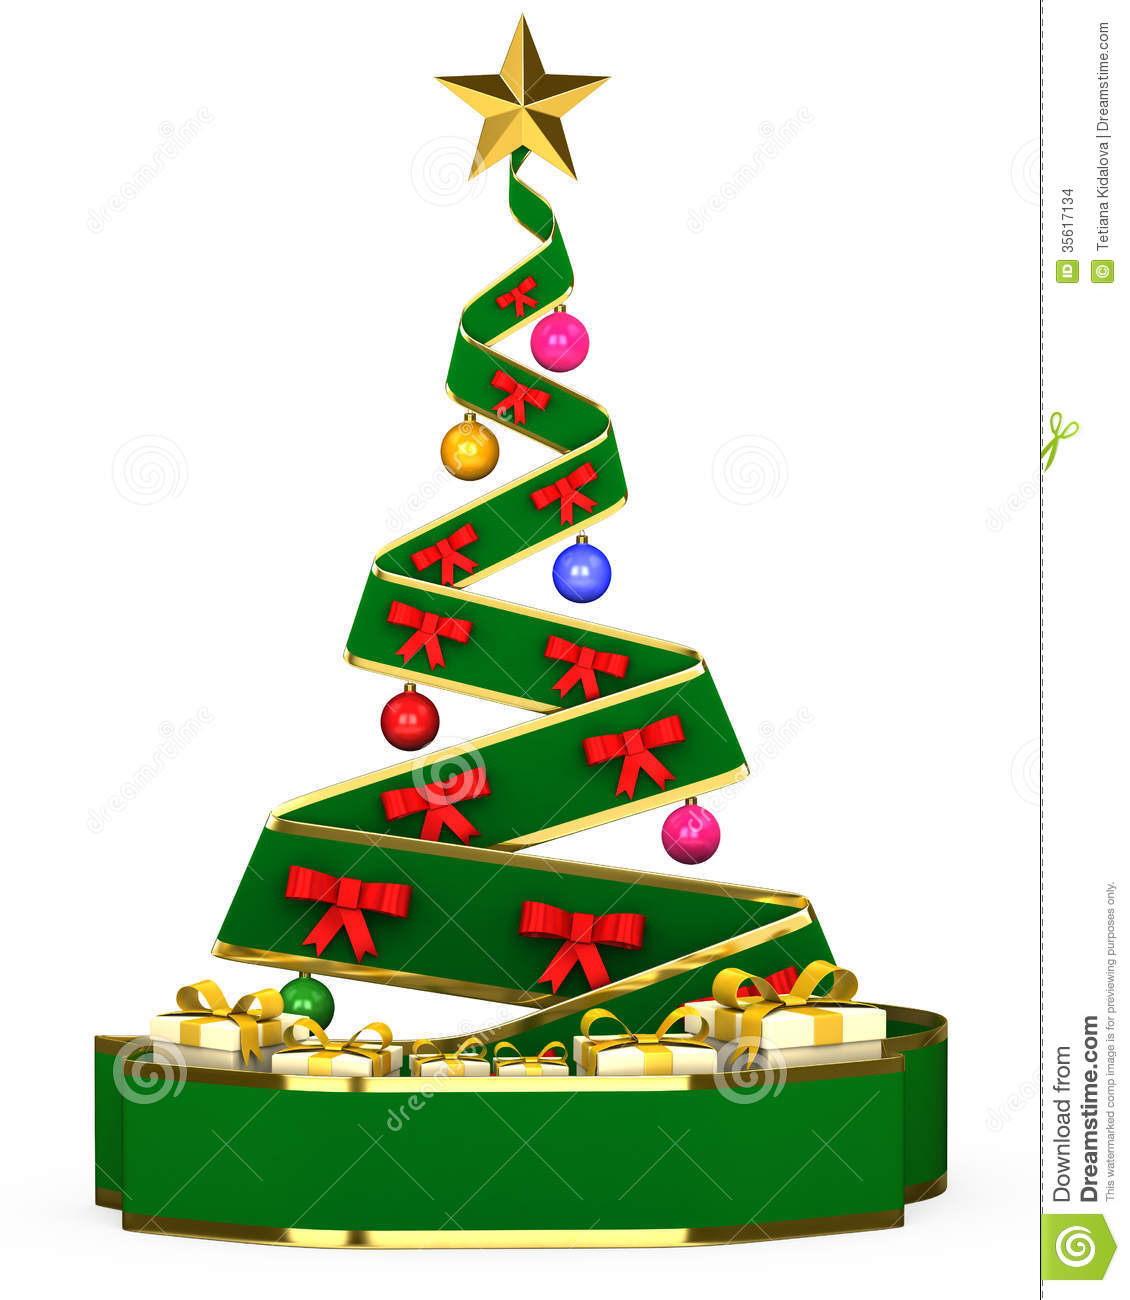 Christmas Tree With Toys : D christmas tree with toys and gifts stock photo image